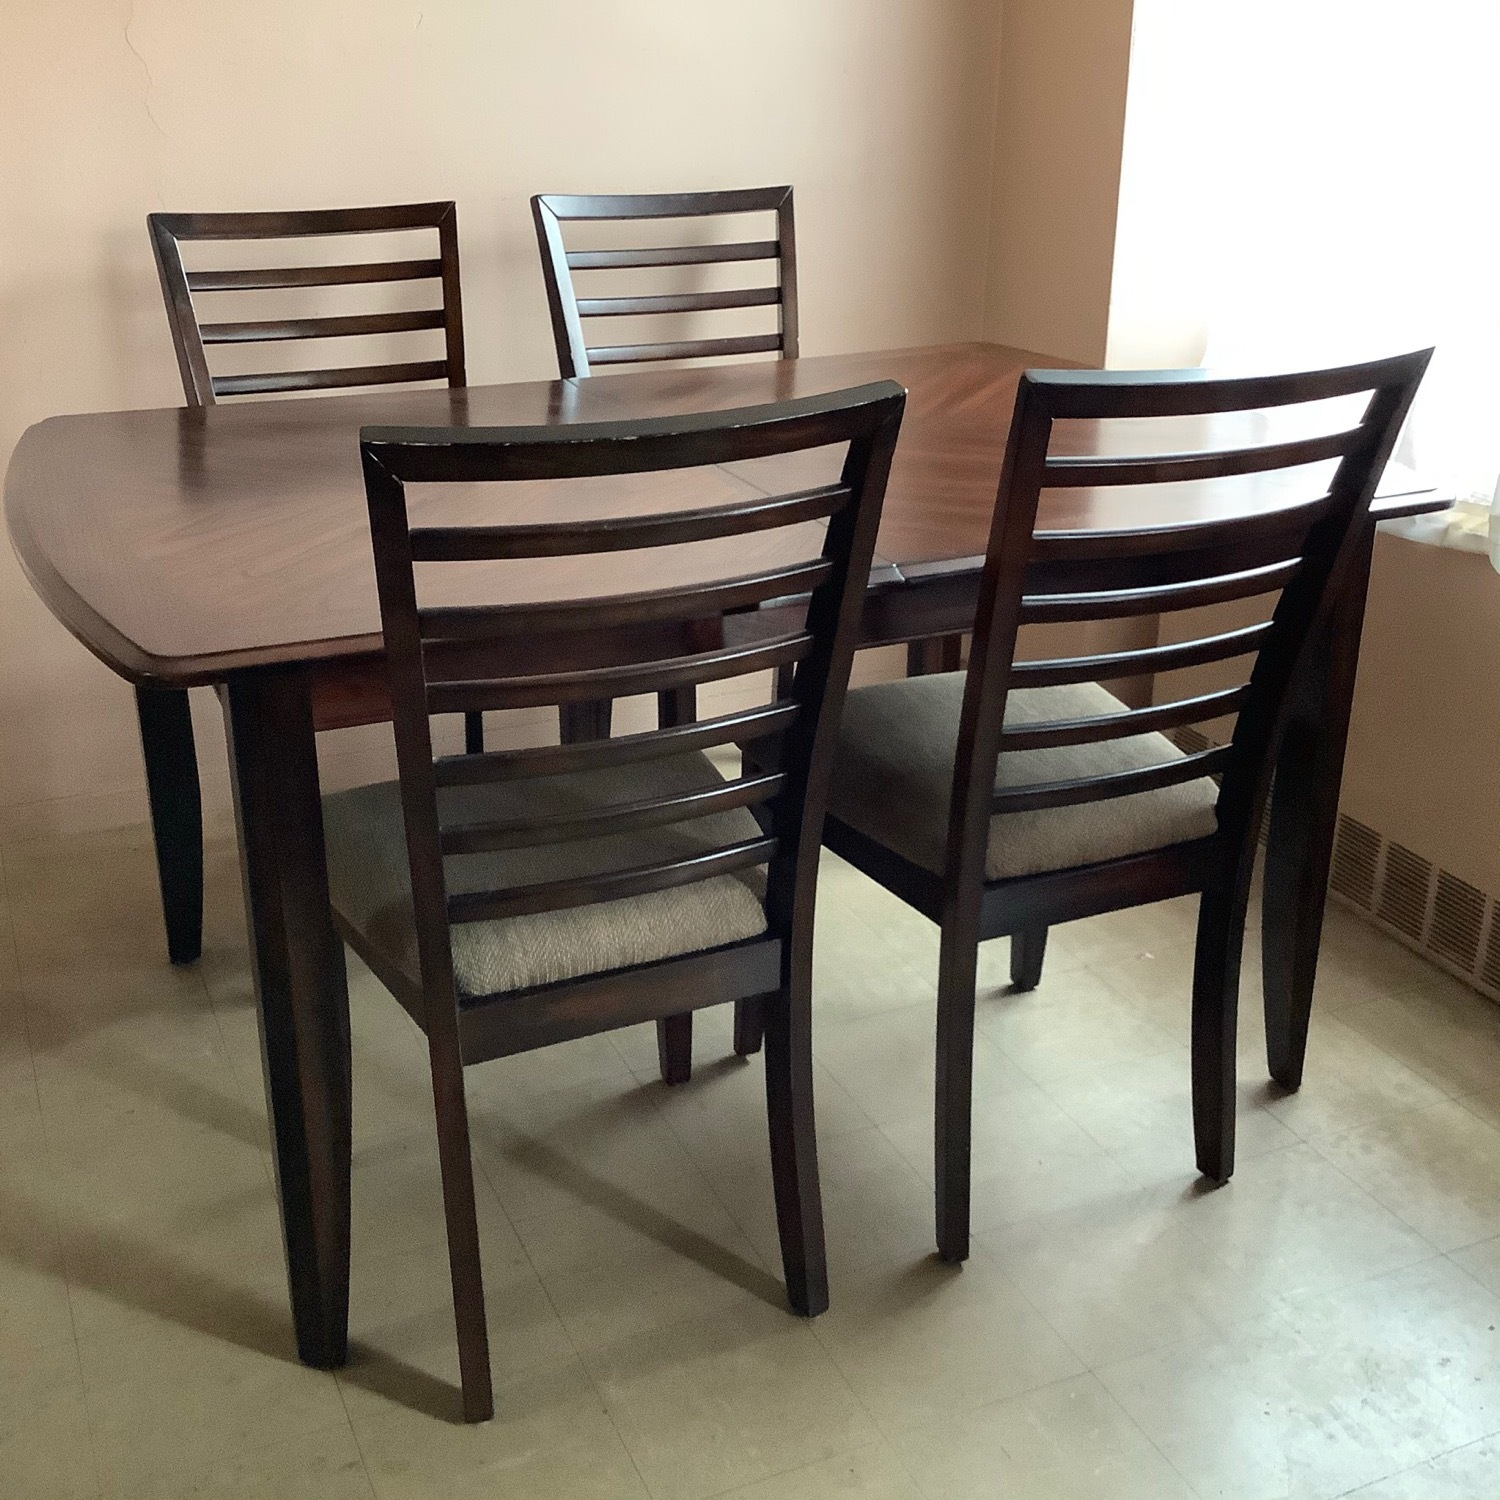 Raymour & Flanigan Butterfly Leaf Table with 4 chairs - image-1